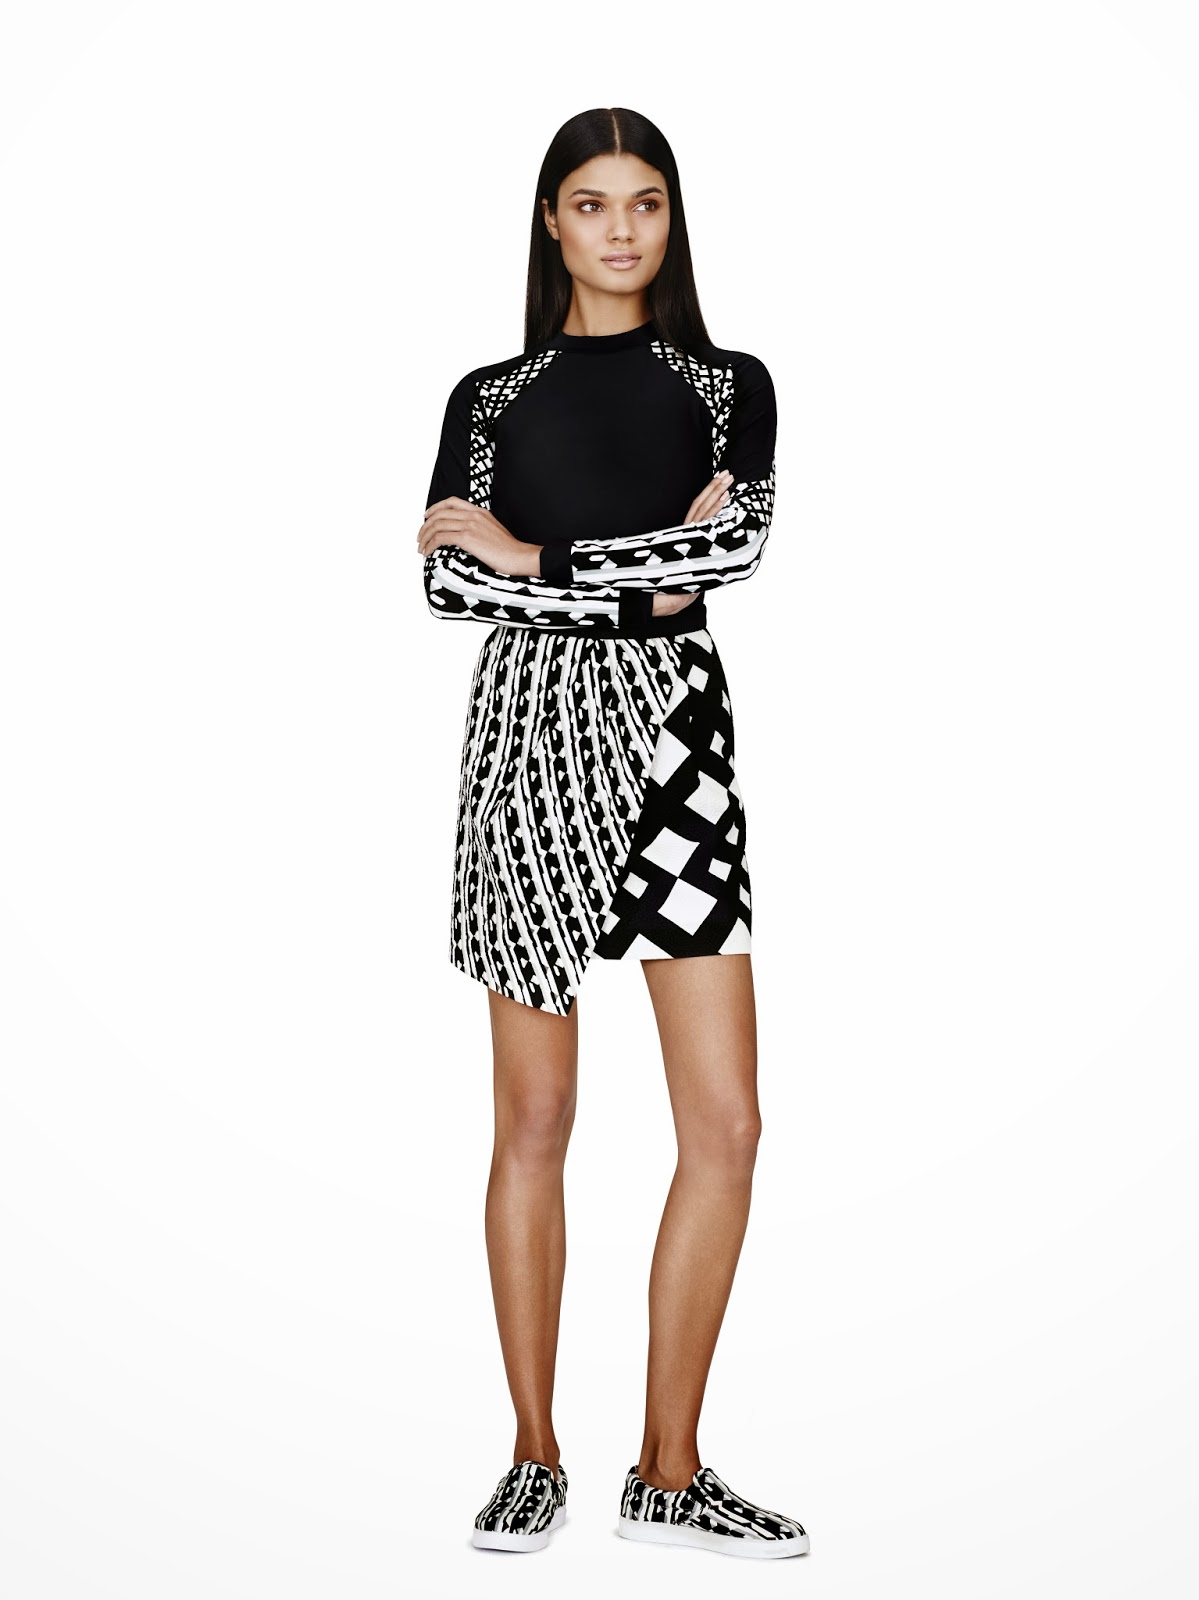 peter-pilotto-target, black-and-white, limited-edition